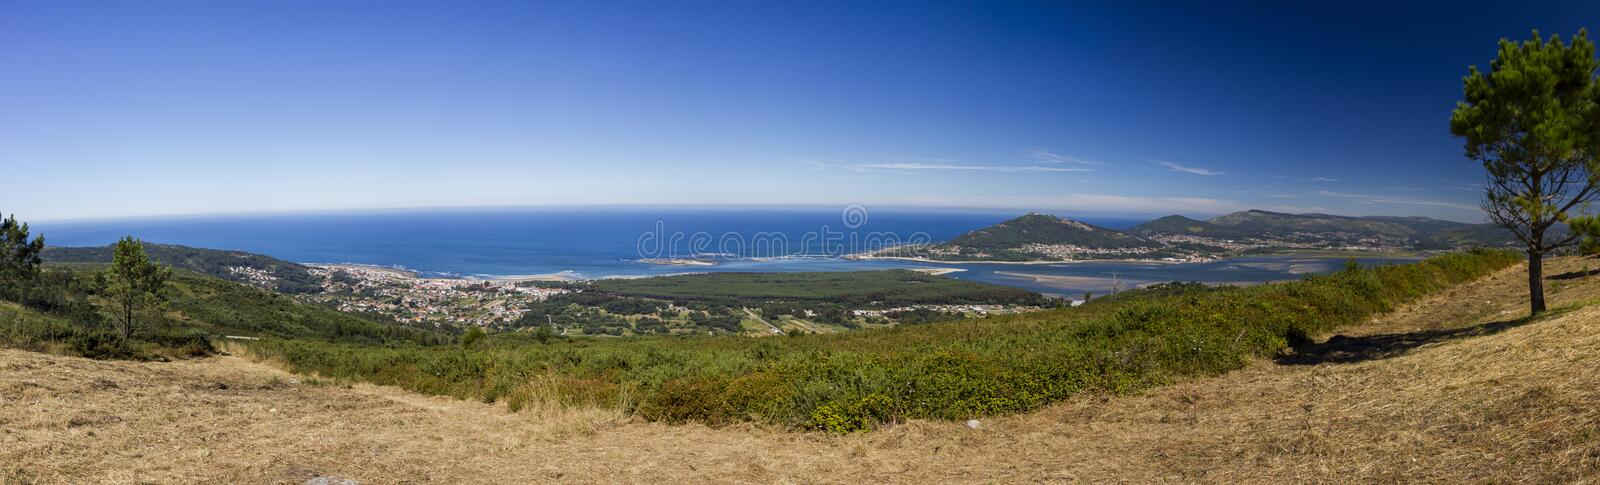 View over the Atlantic and Minho river from the mountains royalty free stock photography